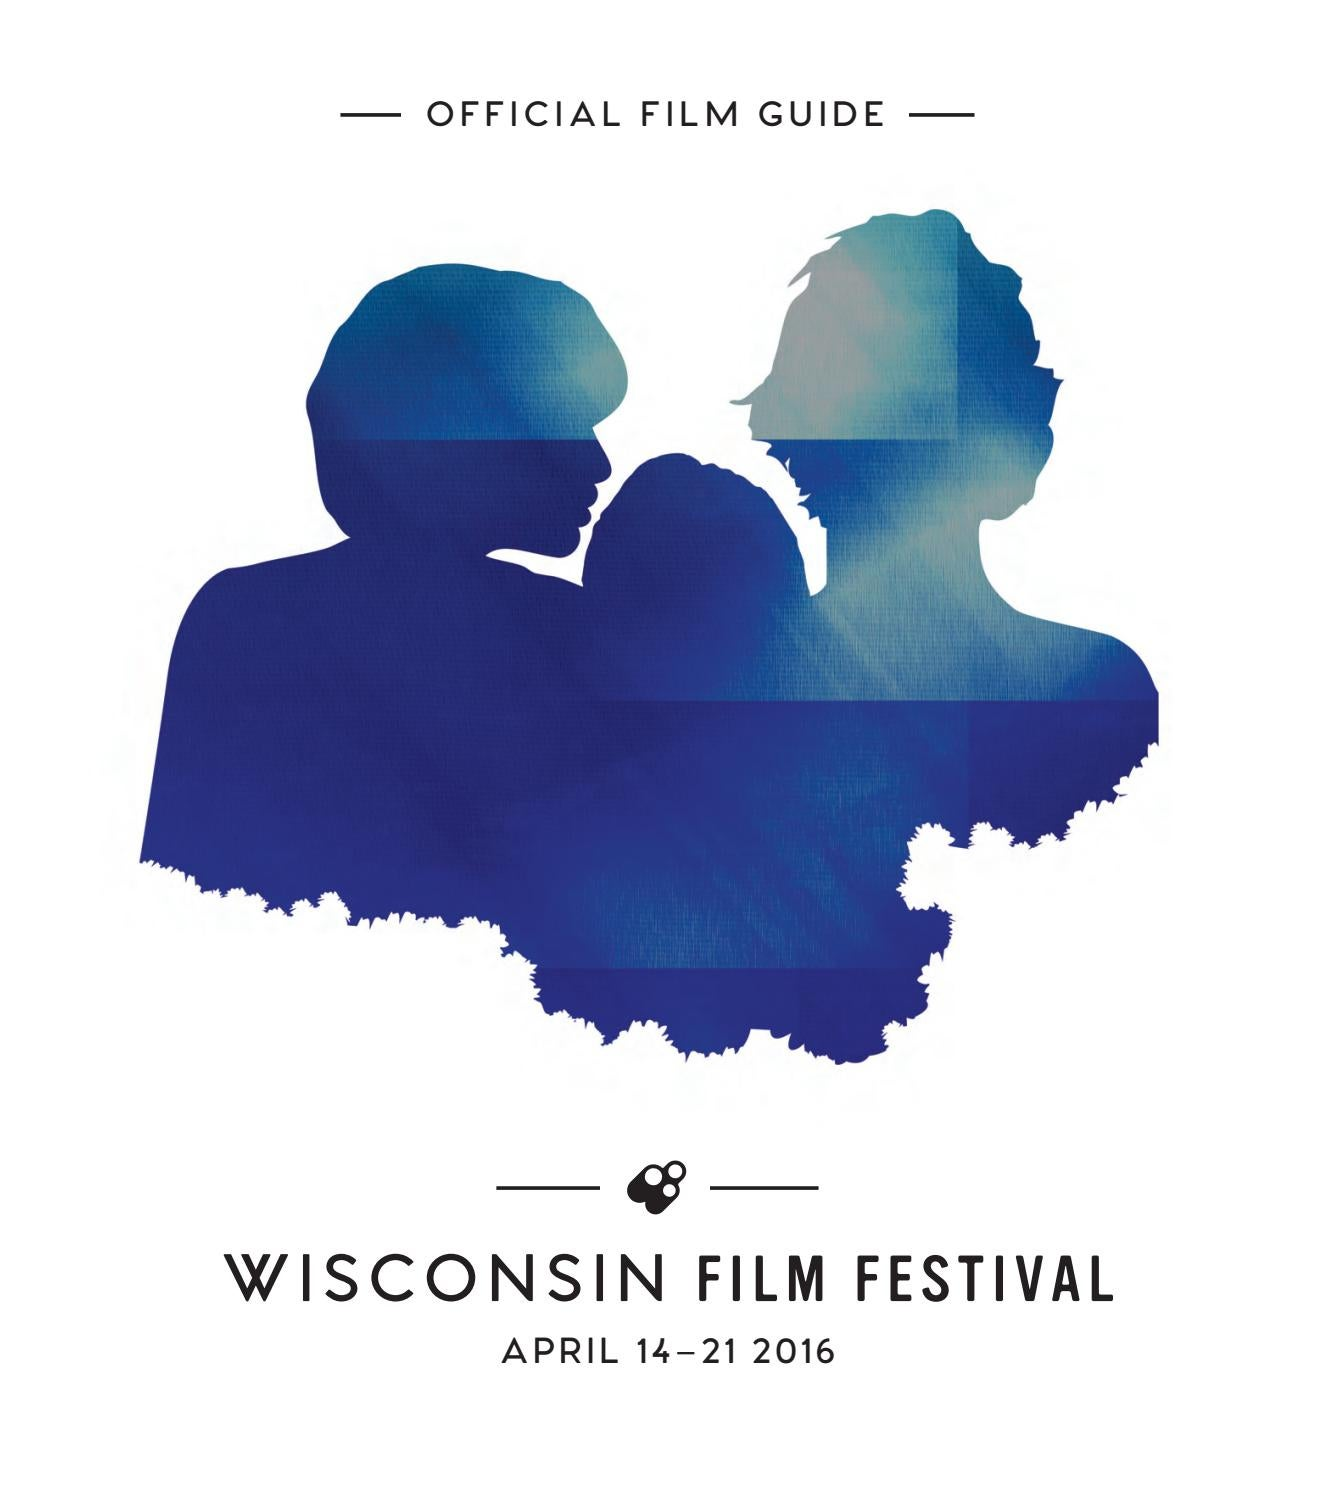 63669a55b56b 2016 Wisconsin Film Festival Film Guide by UW-Madison Division of the Arts  - issuu